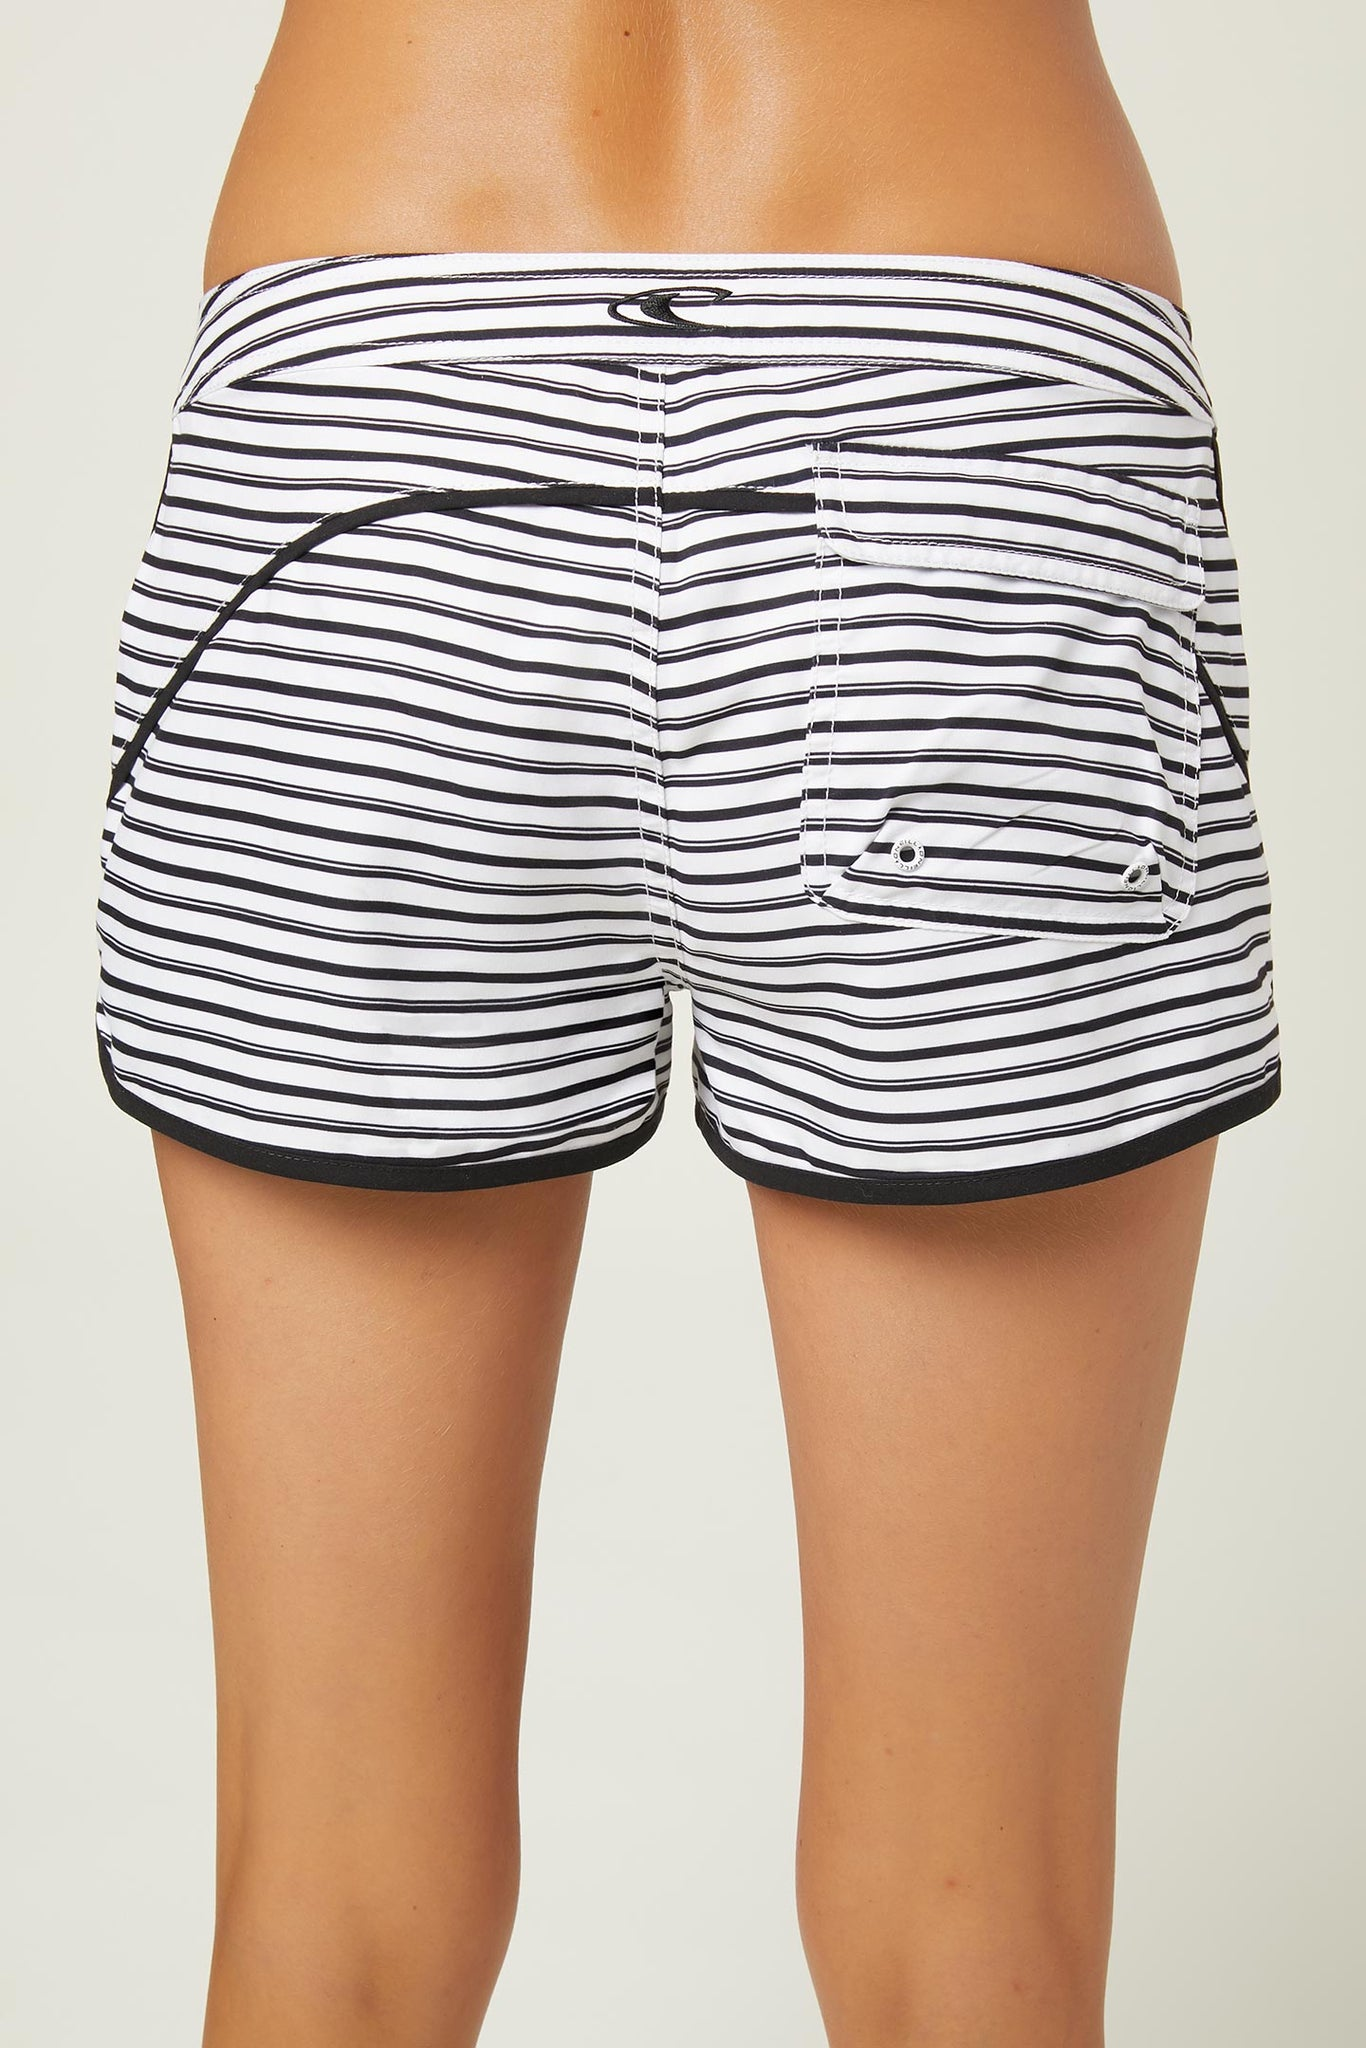 "Sea Level 3"" Boardshorts - White W/ Black 